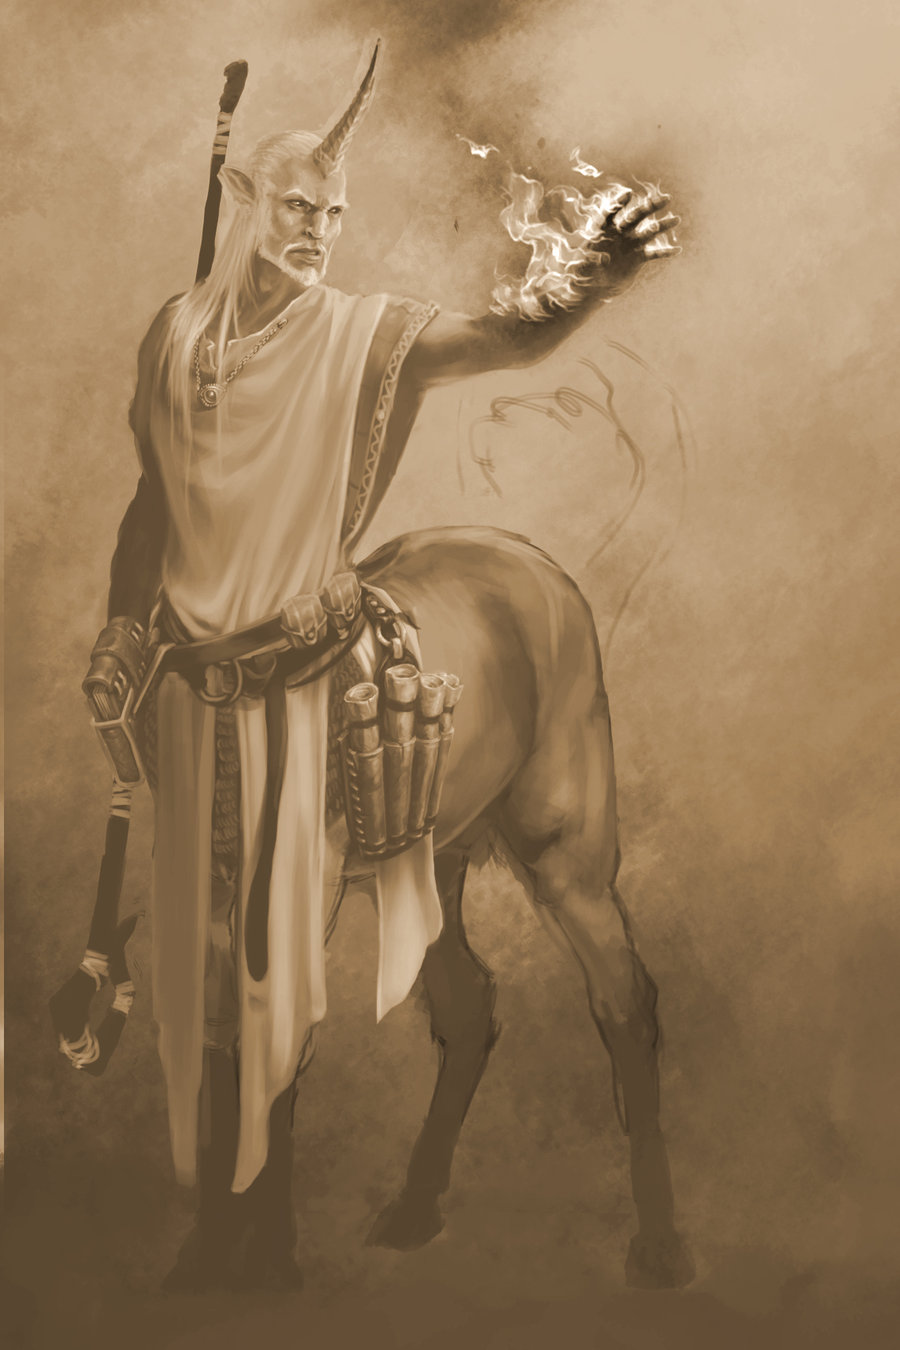 http://centaurican.files.wordpress.com/2012/09/best-of-the-bunch-unicorn_centaur_wip_2_by_ruloc-d3hdbxd.jpg